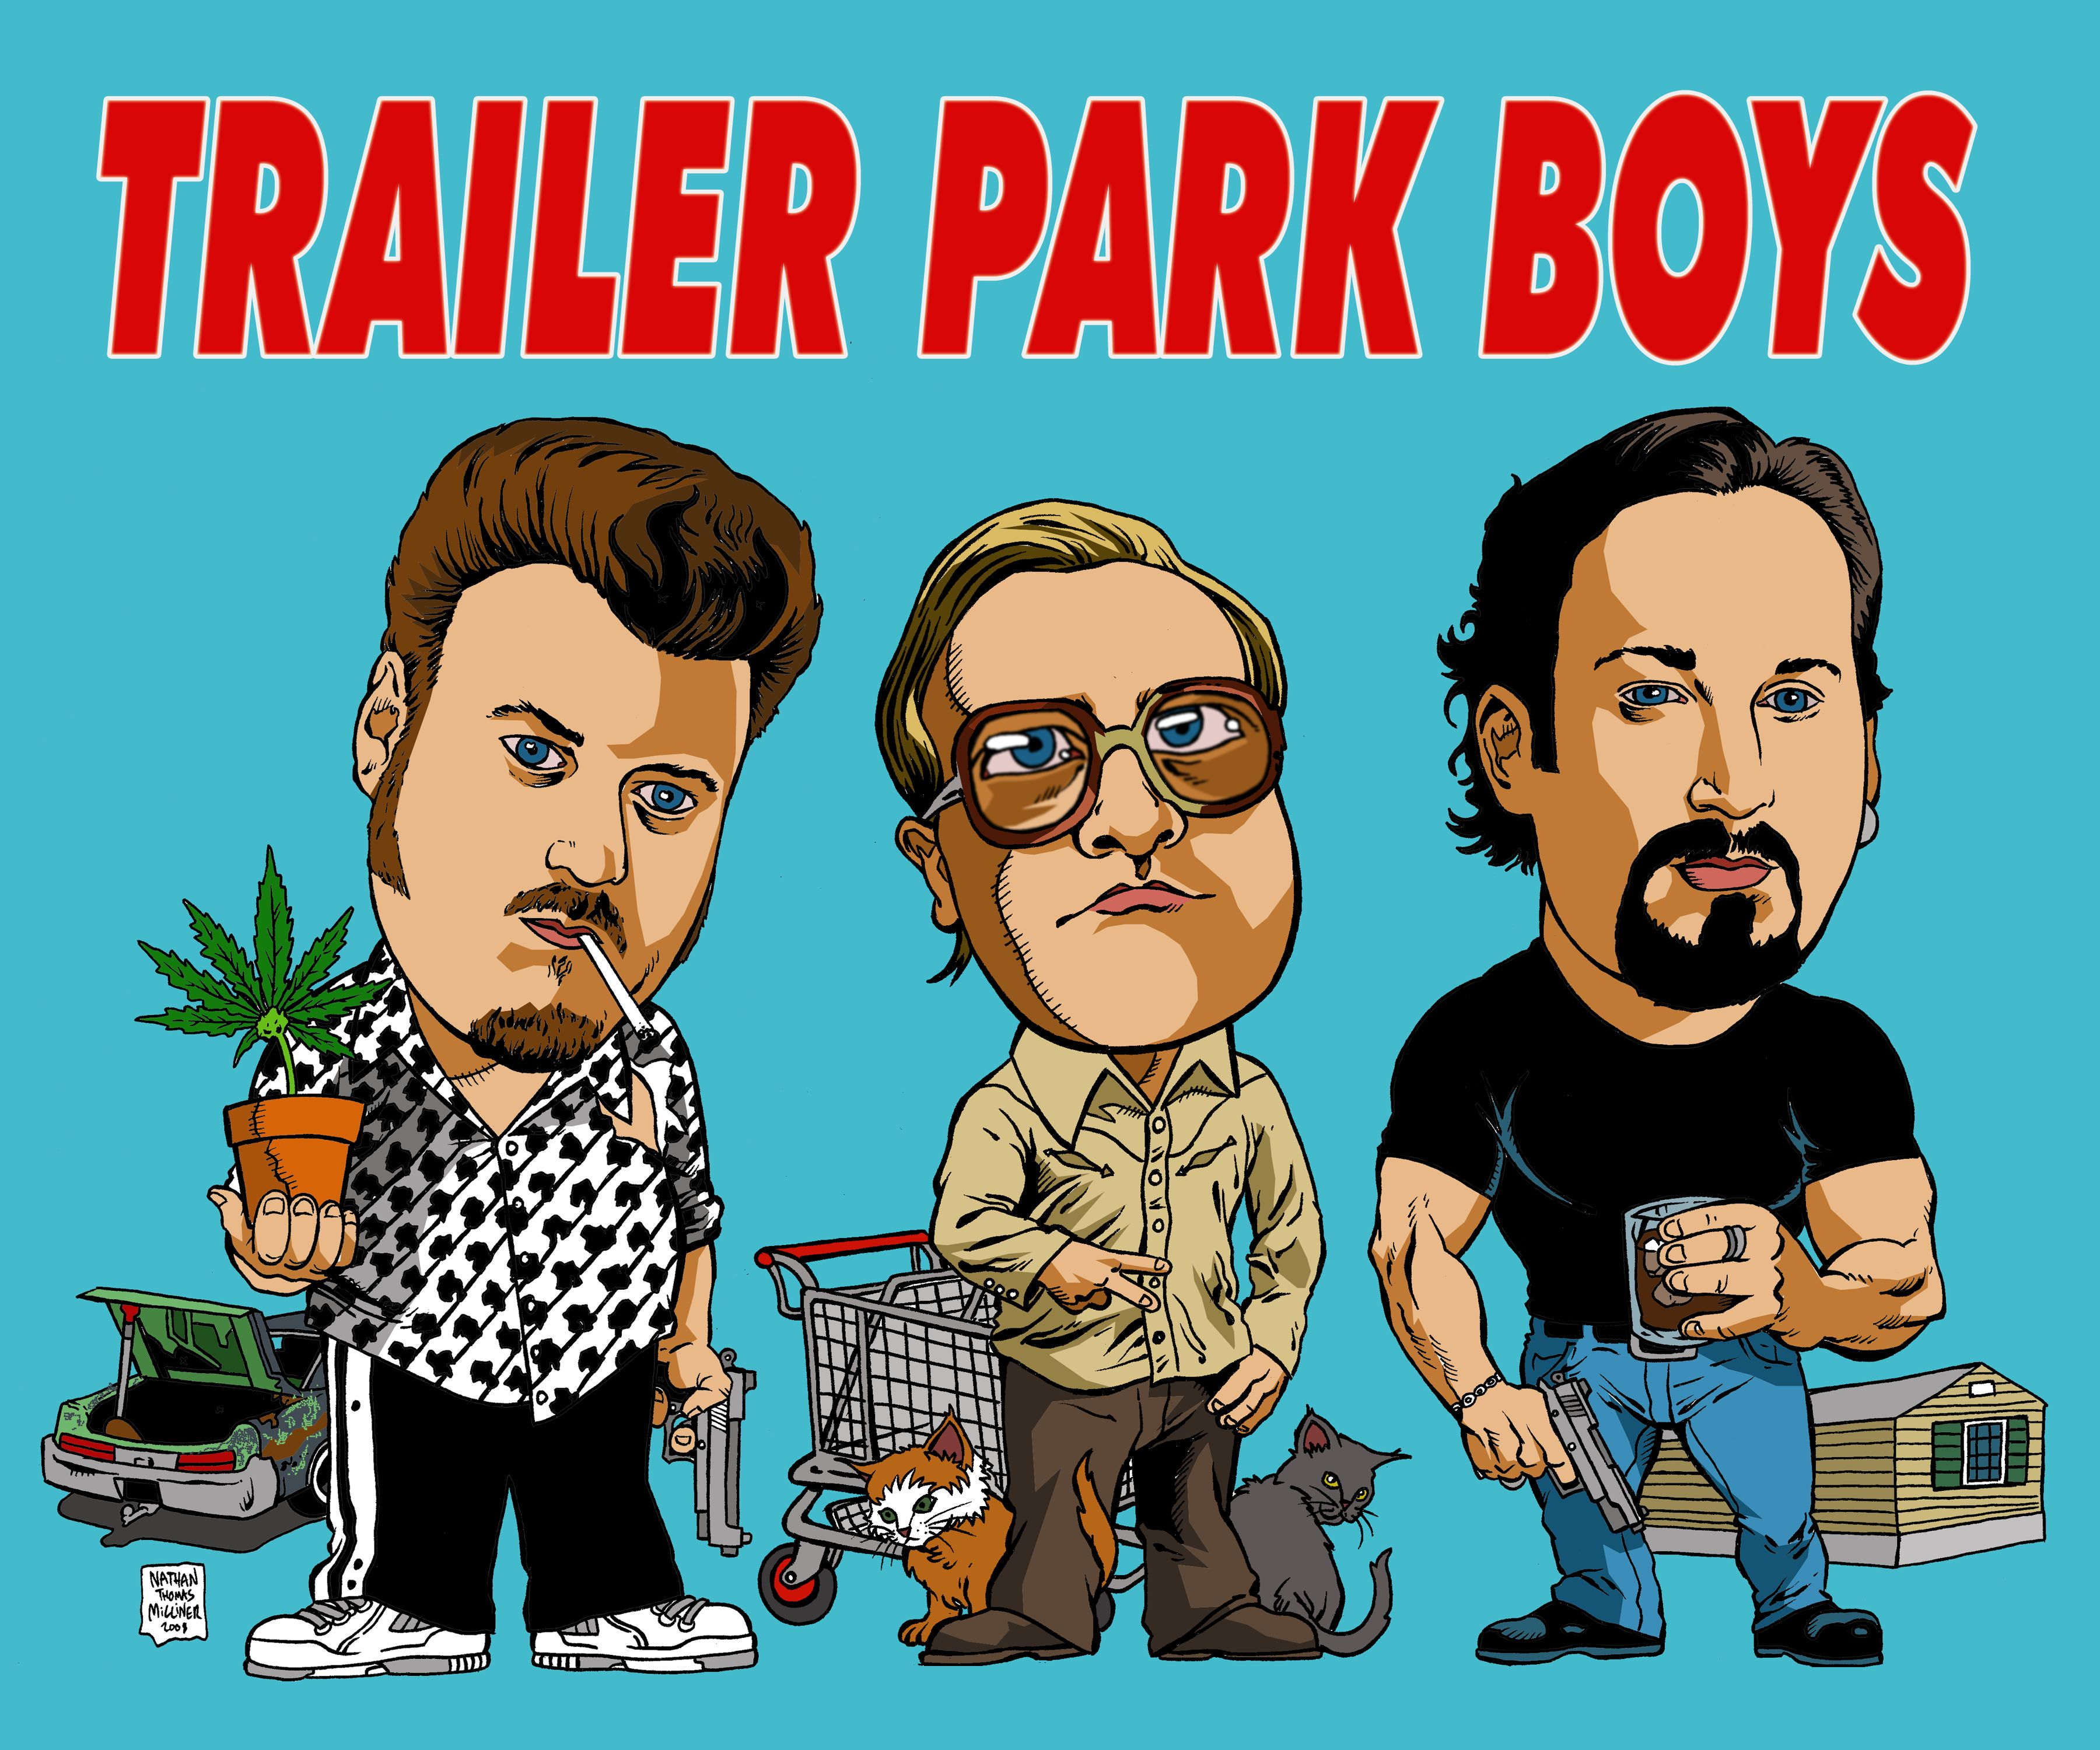 Trailer Park Boys Wallpapers Trailer Park Boys Wallpaper 4k 3600x3000 Download Hd Wallpaper Wallpapertip